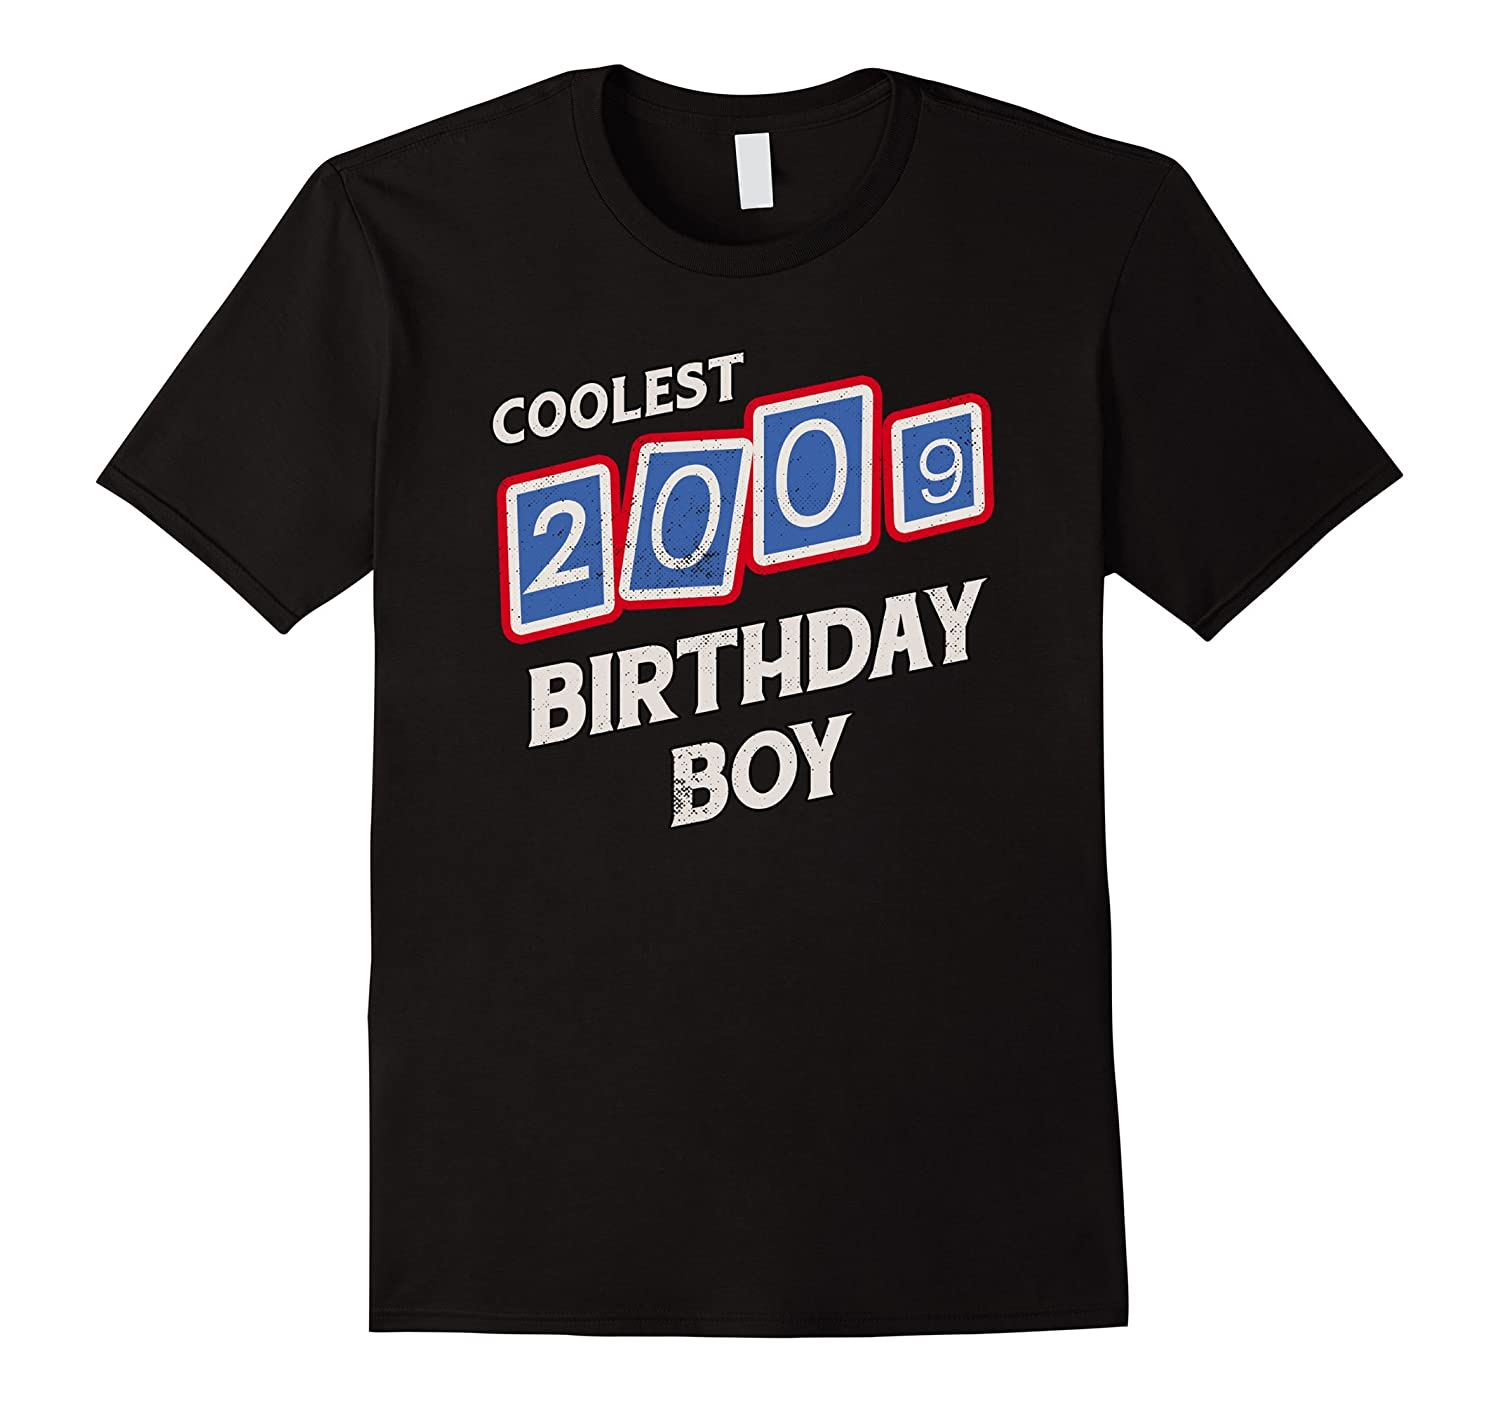 2009 8th Birthday Gift 8 Years Old Boy Bday T Shirt